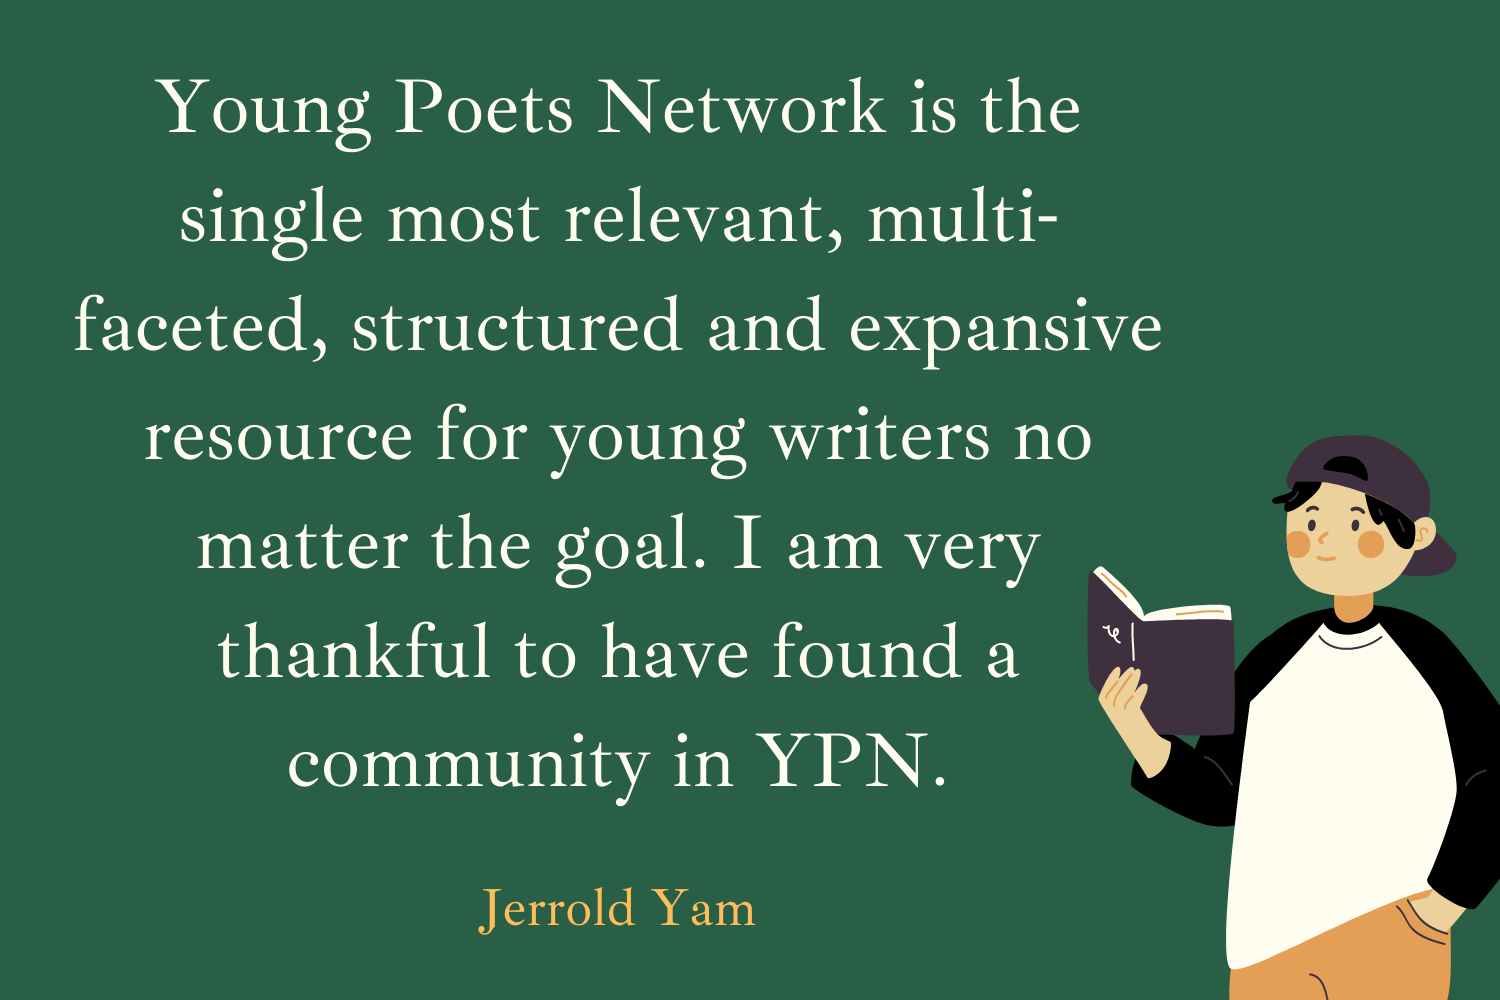 YPN is the single most relevant, multi-faceted, structured and expansive resource for young writers no matter the goal. Very thankful to have found a community in YPN, and to be involved in the various challenges and activities it has organised over the years. (Jerrold Yam)